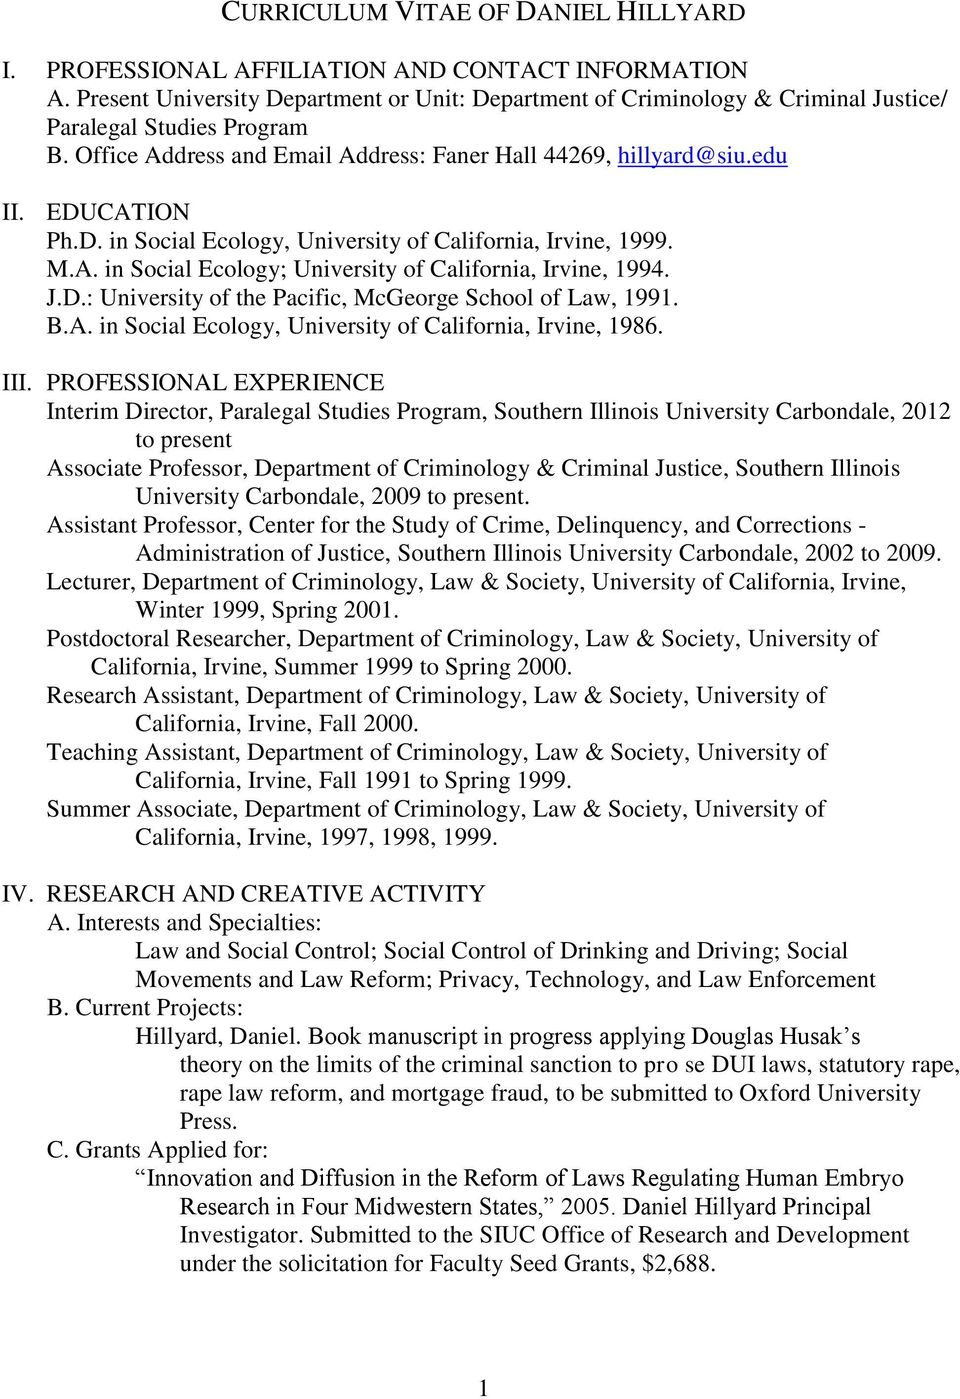 D. in Social Ecology, University of California, Irvine, 1999. M.A. in Social Ecology; University of California, Irvine, 1994. J.D.: University of the Pacific, McGeorge School of Law, 1991. B.A. in Social Ecology, University of California, Irvine, 1986.